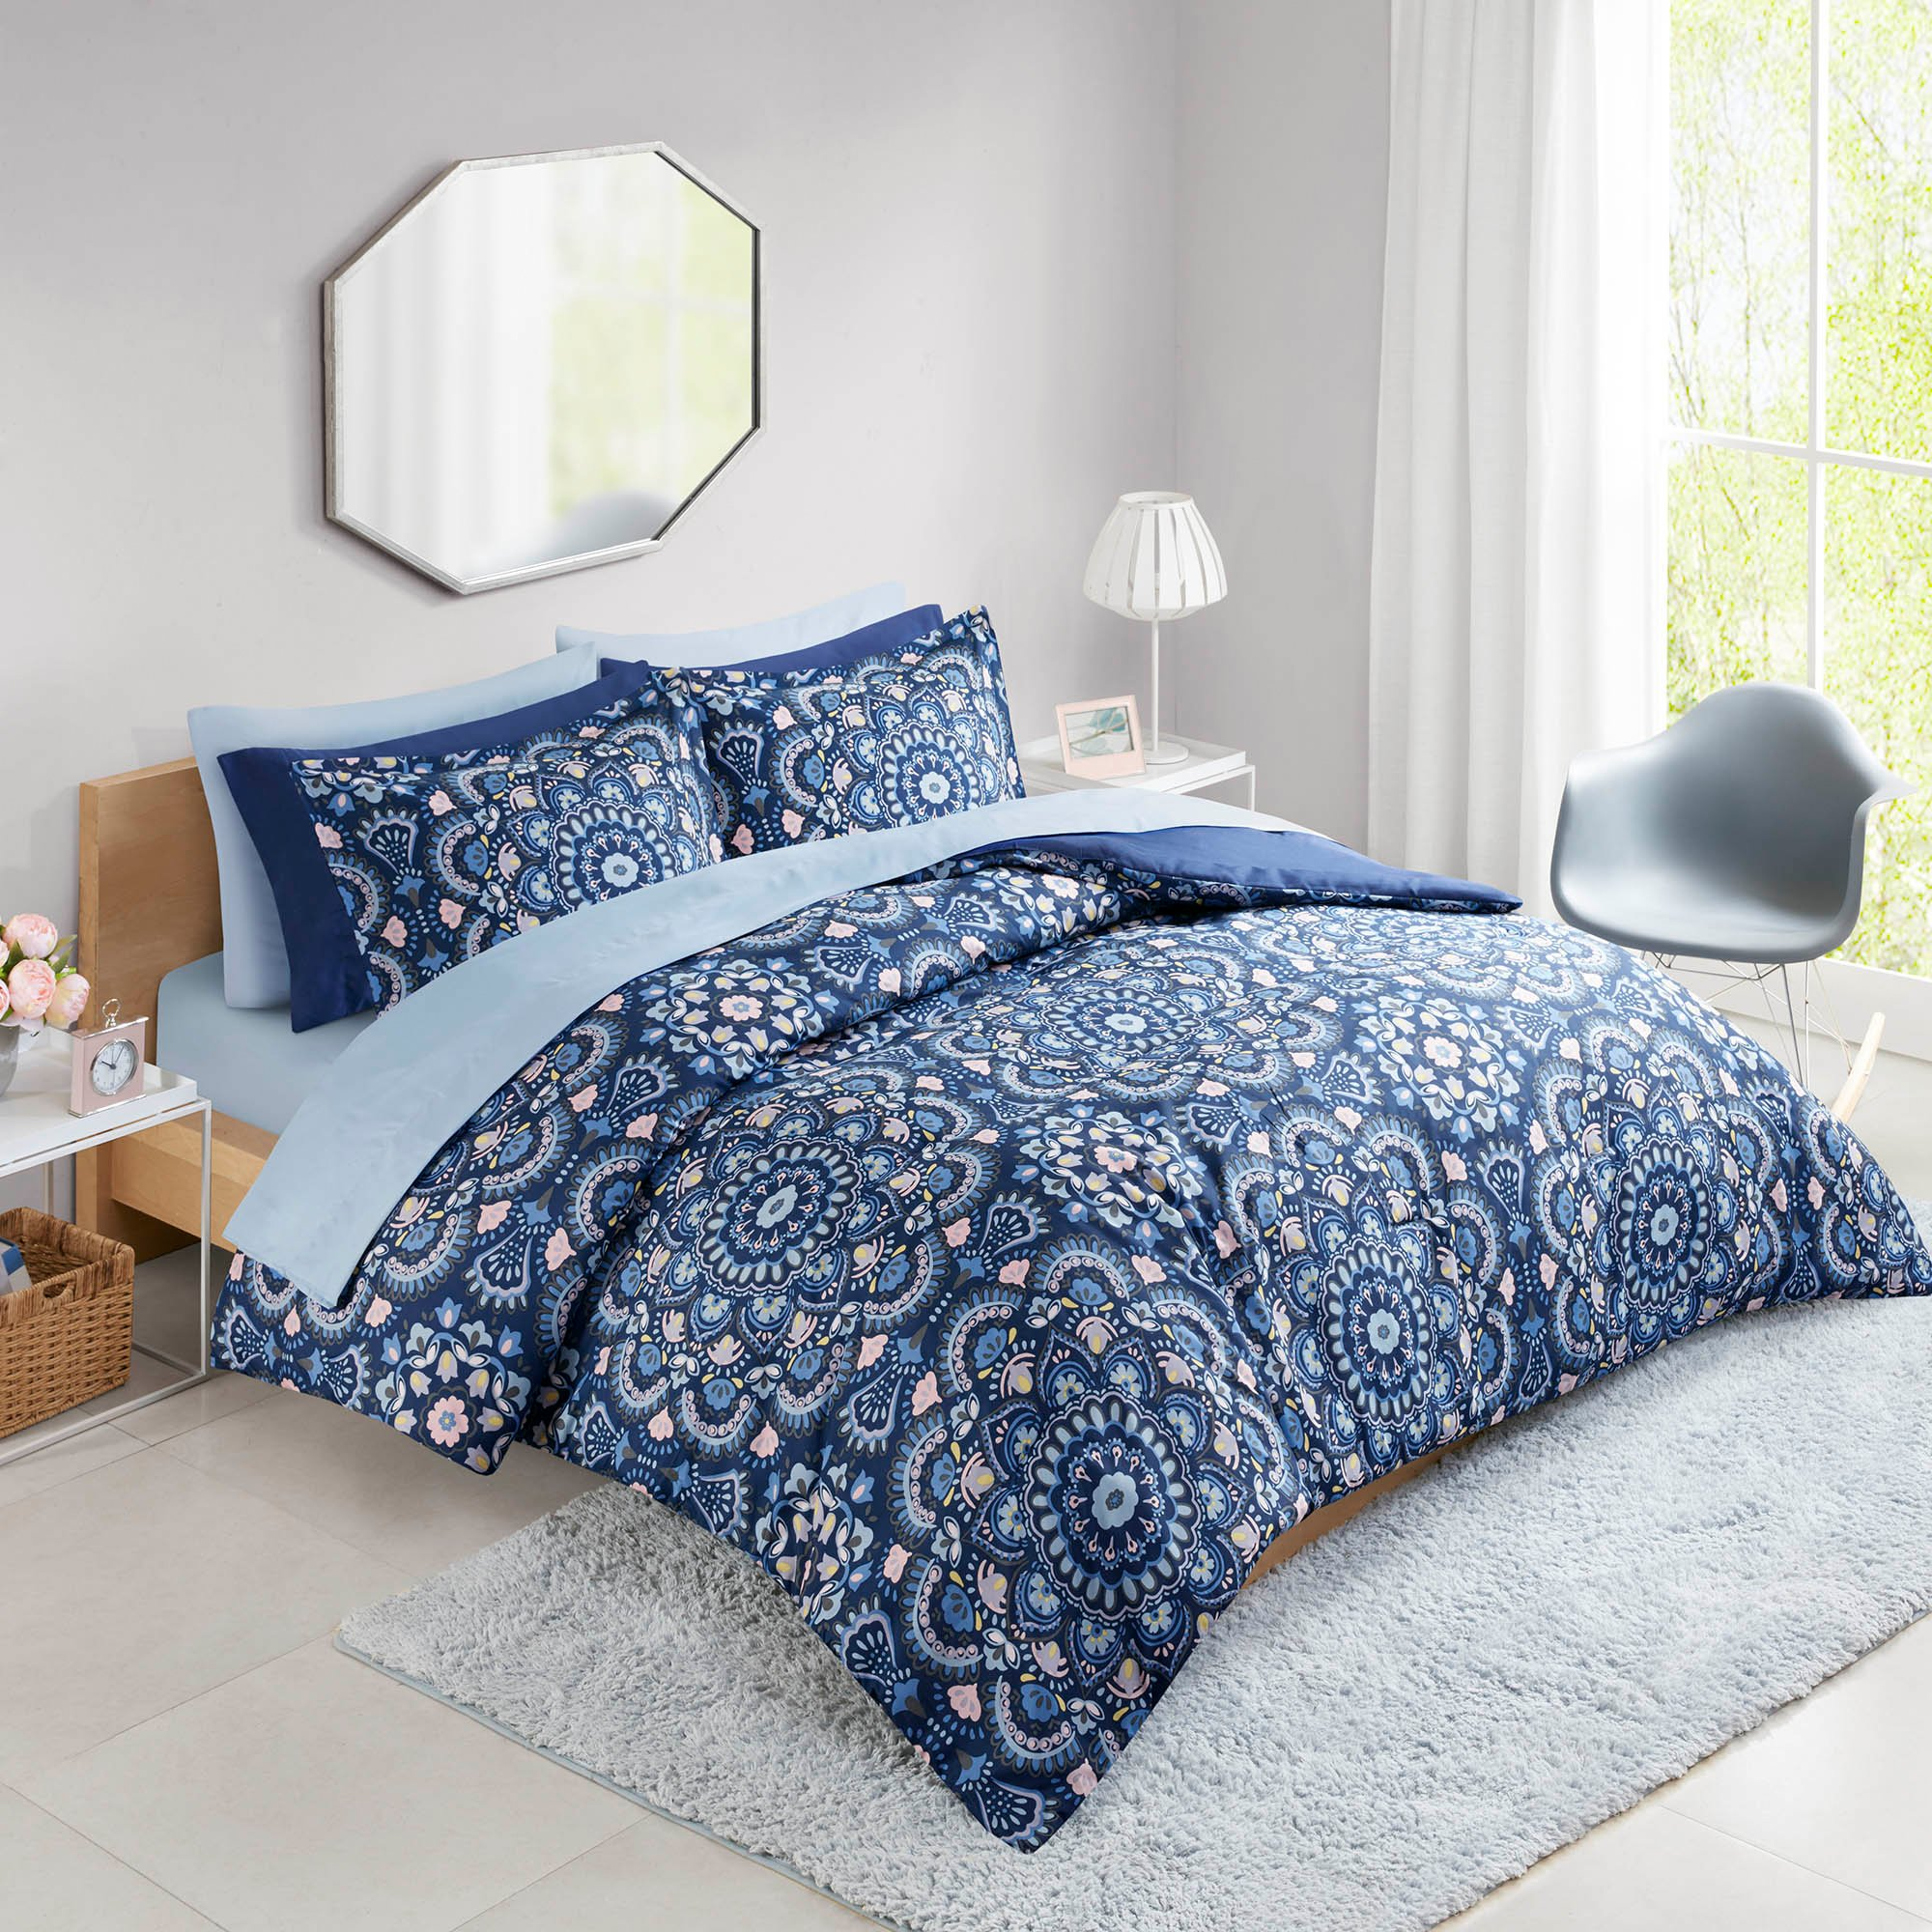 Bed In a Bag Queen Comforter Set with Sheets feat. Two Side Pockets - Cara 9 Piece All Season Bedding Sets Queen Microfiber Printed Blue Medallion by Comfort Spaces